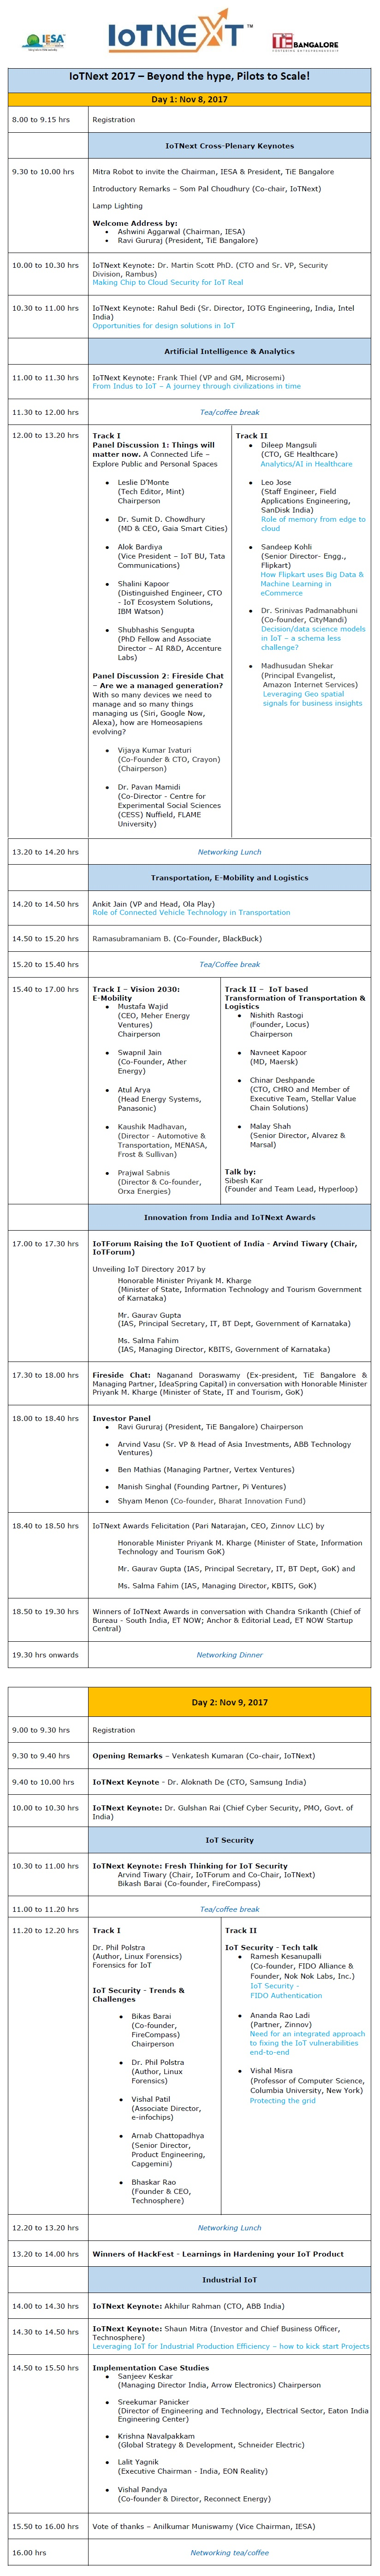 Agenda on Web - 7 Nov.jpg